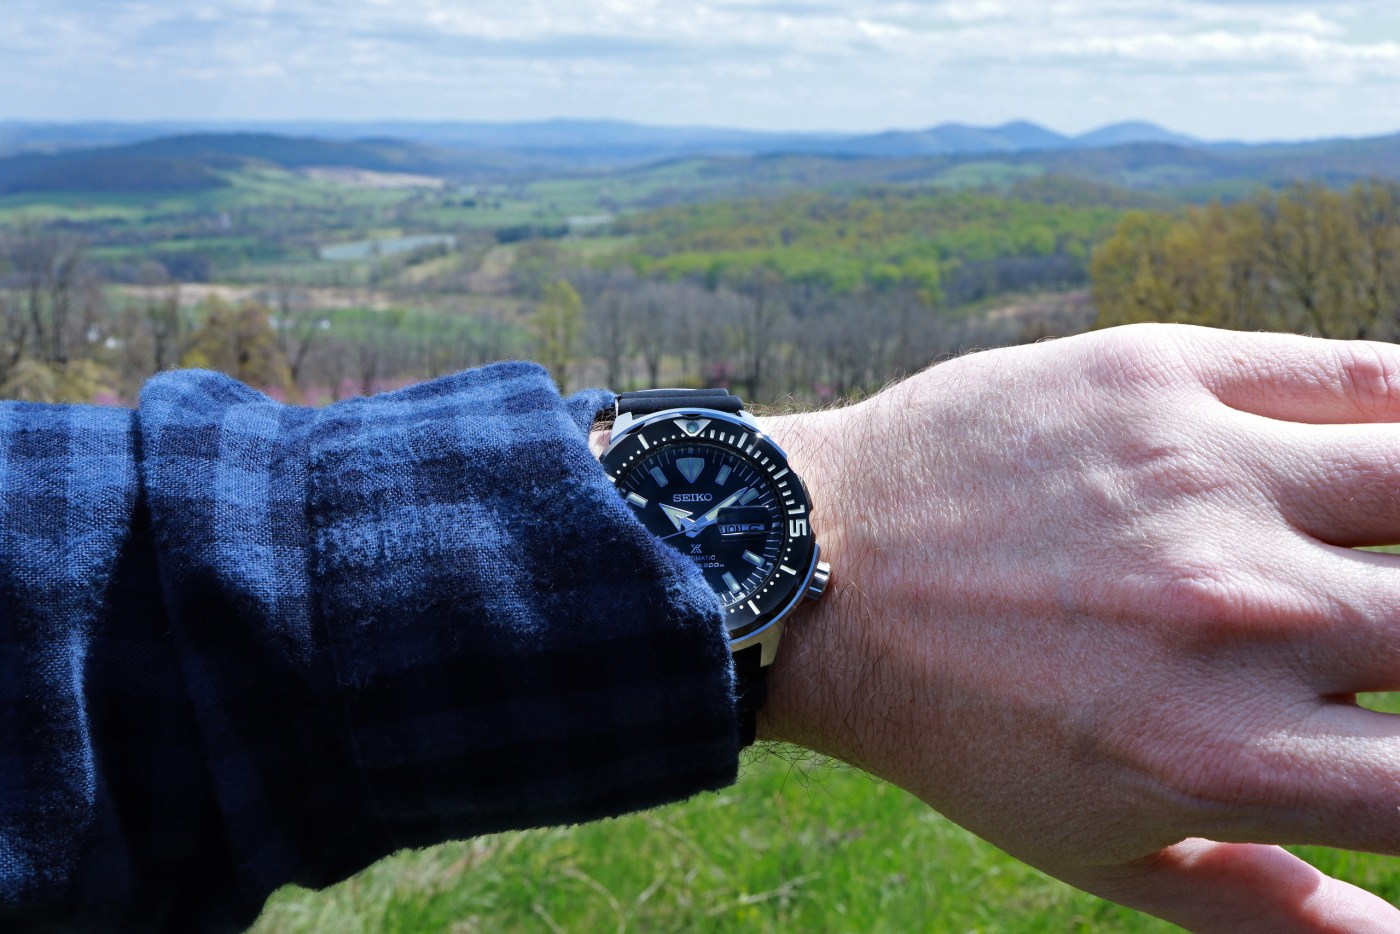 Seiko Prospex Ref SRPD27 Monster Automatic Diver wristshot at Skyview Meadows park